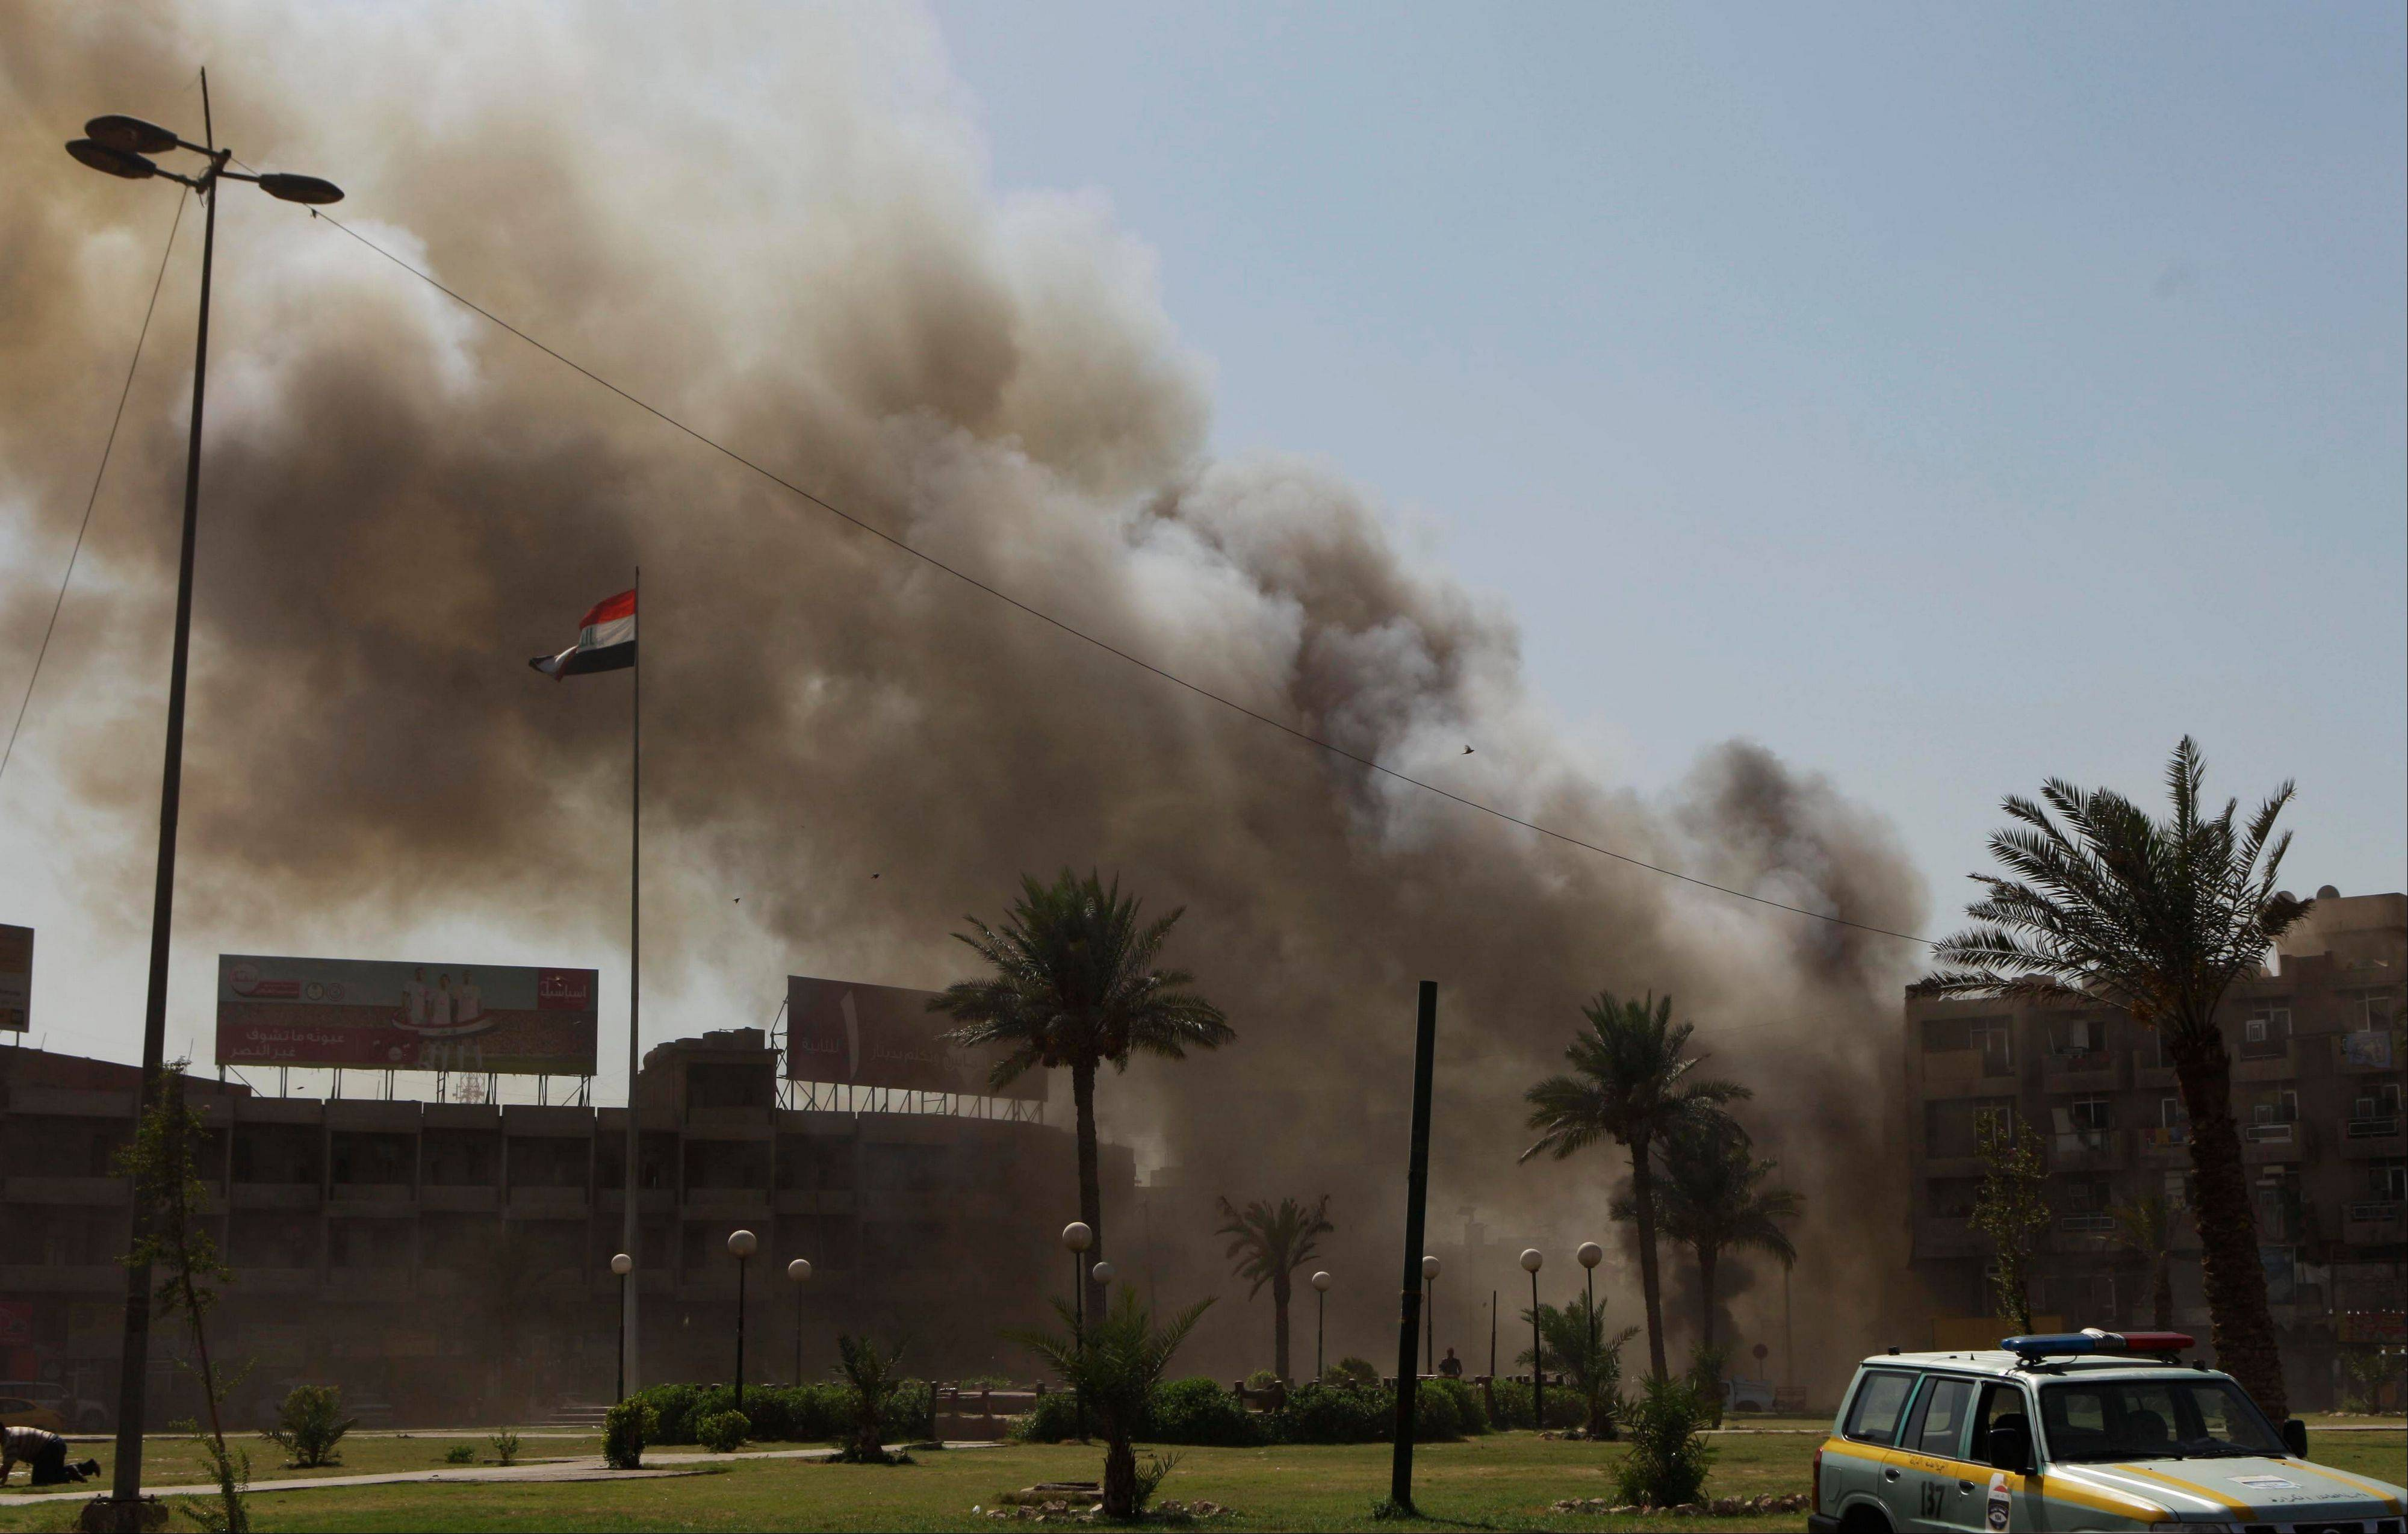 Plumes of smoke rise from the scene of a car bomb attack Sunday near the Sacred Heart Church in the Karrada Neighborhood of Baghdad, Iraq. A rapid-fire series of explosions in Baghdad while Iraqis were going to work on Sunday morning, killed and wounded scores of people, police said.